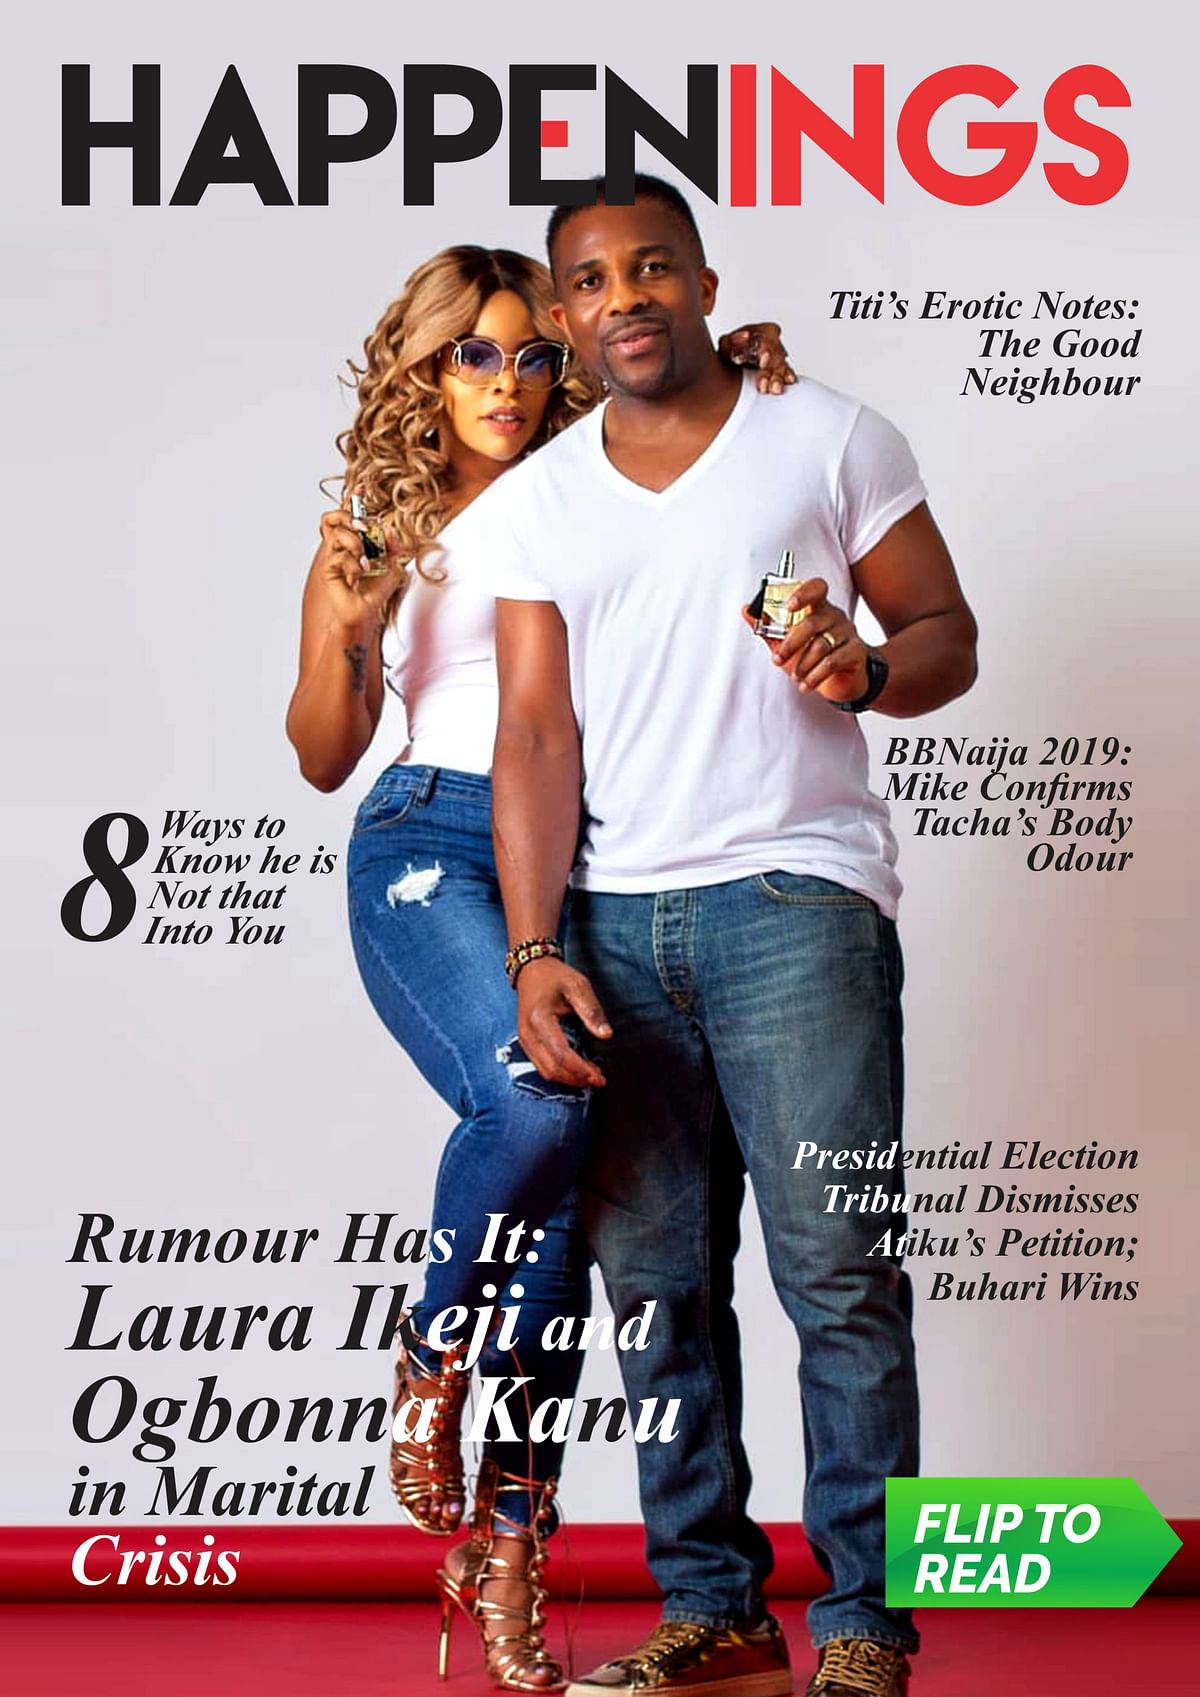 Happenings Newsletter: Laura Ikeji and Ogbonna Kanu's Marriage on Shaky Ground